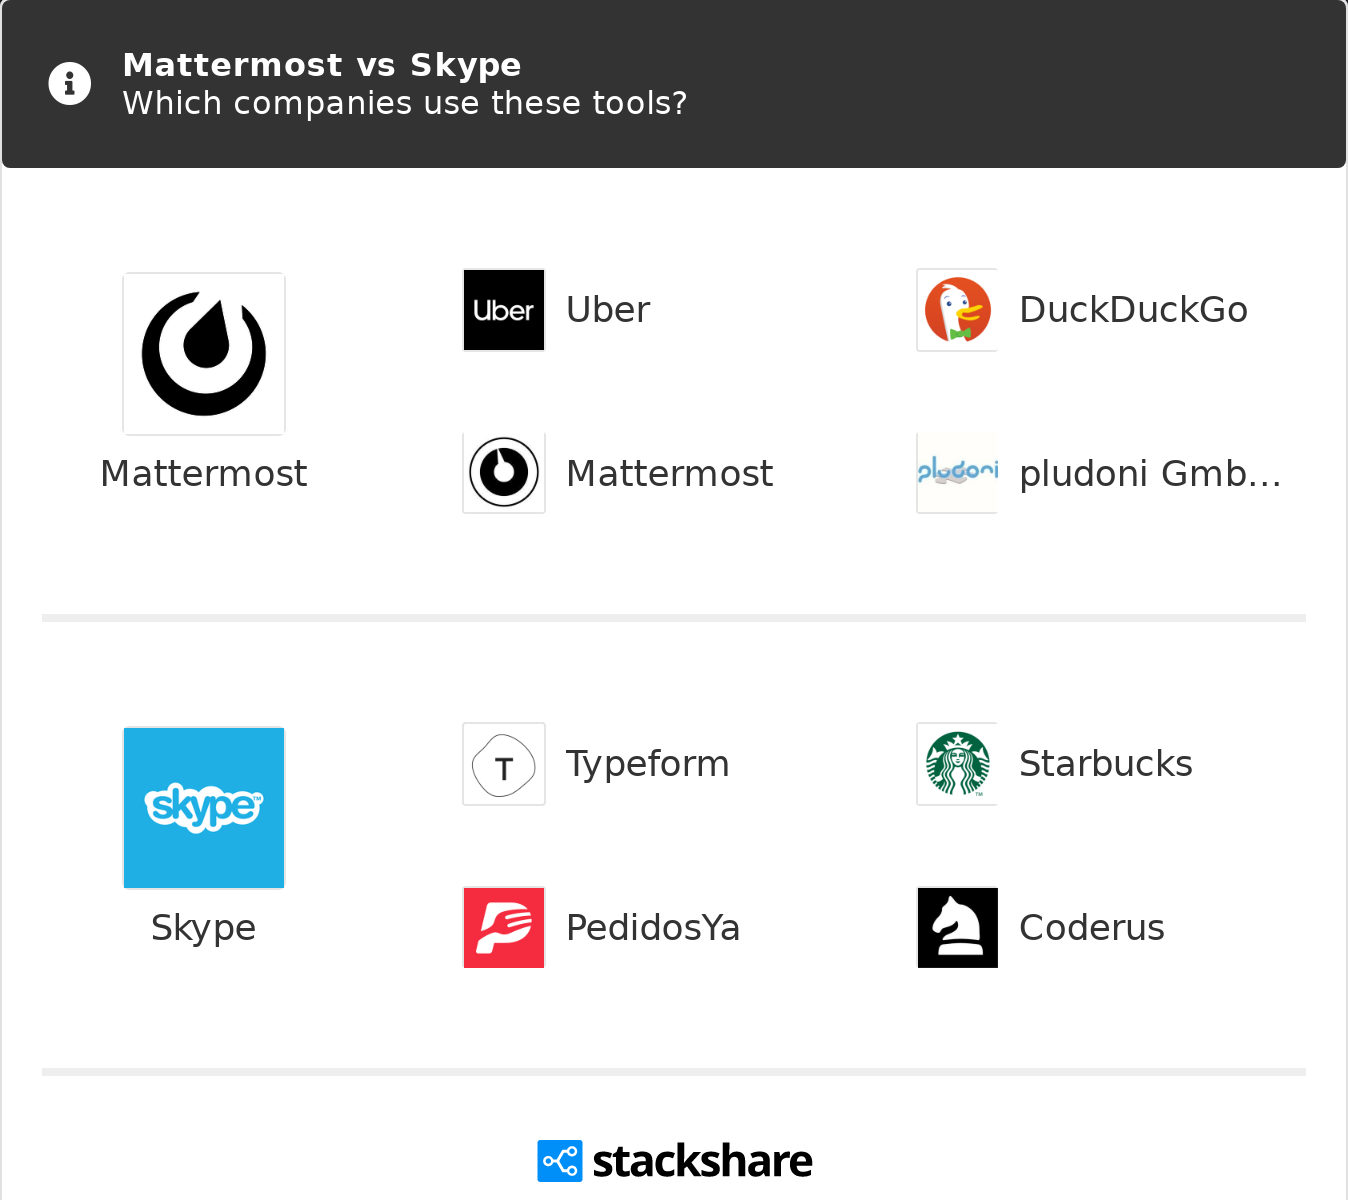 Mattermost vs Skype | What are the differences?